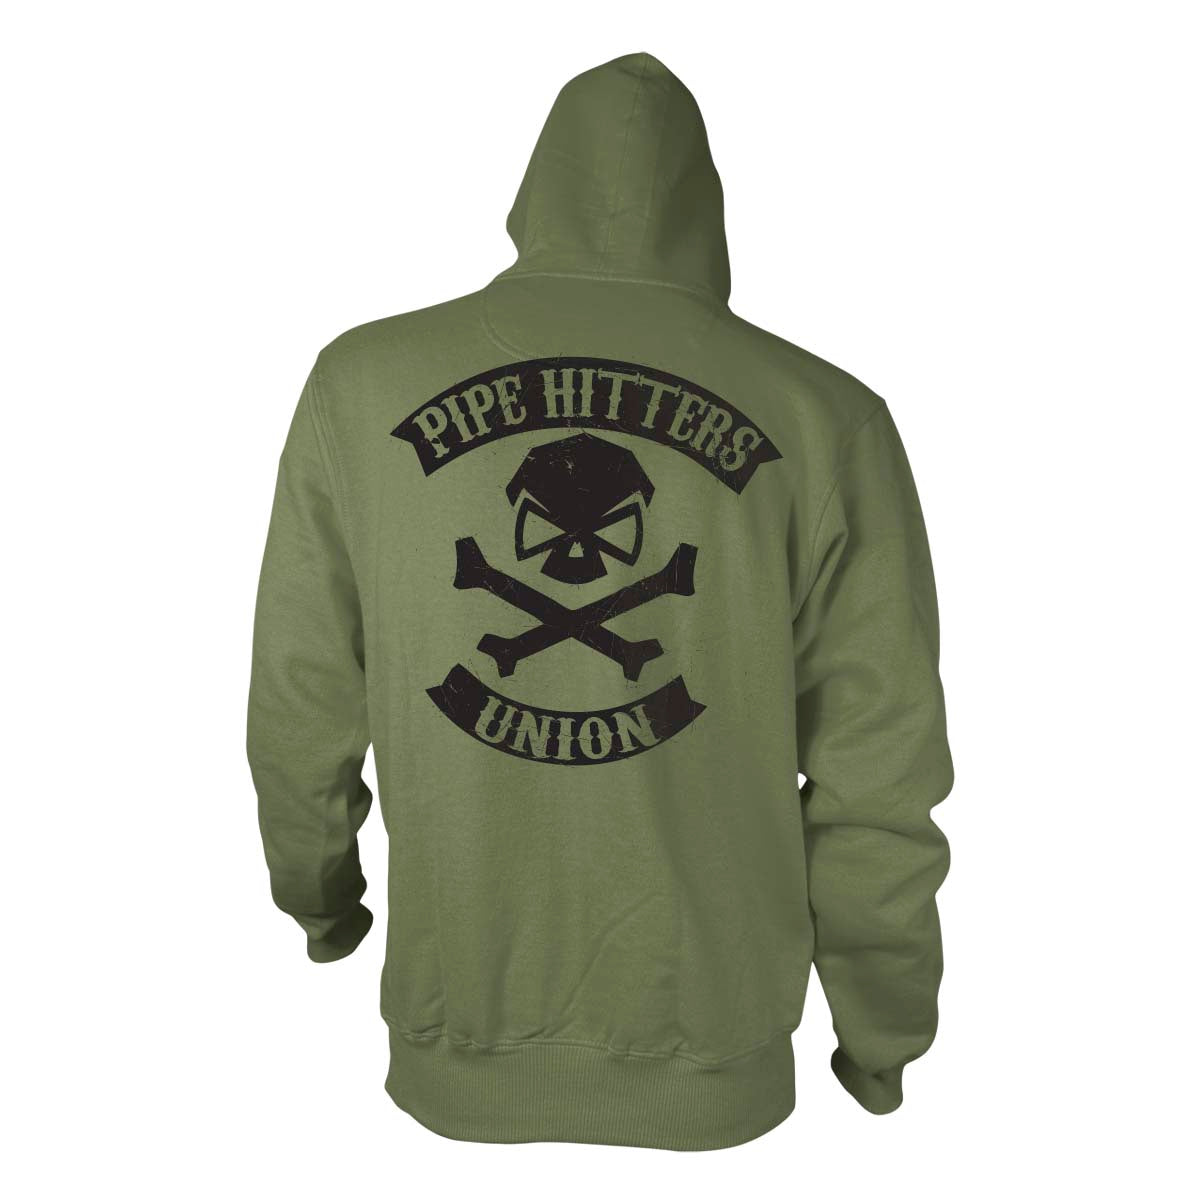 Sons of Conflict Hoodie - Olive - Hoodies - Pipe Hitters Union